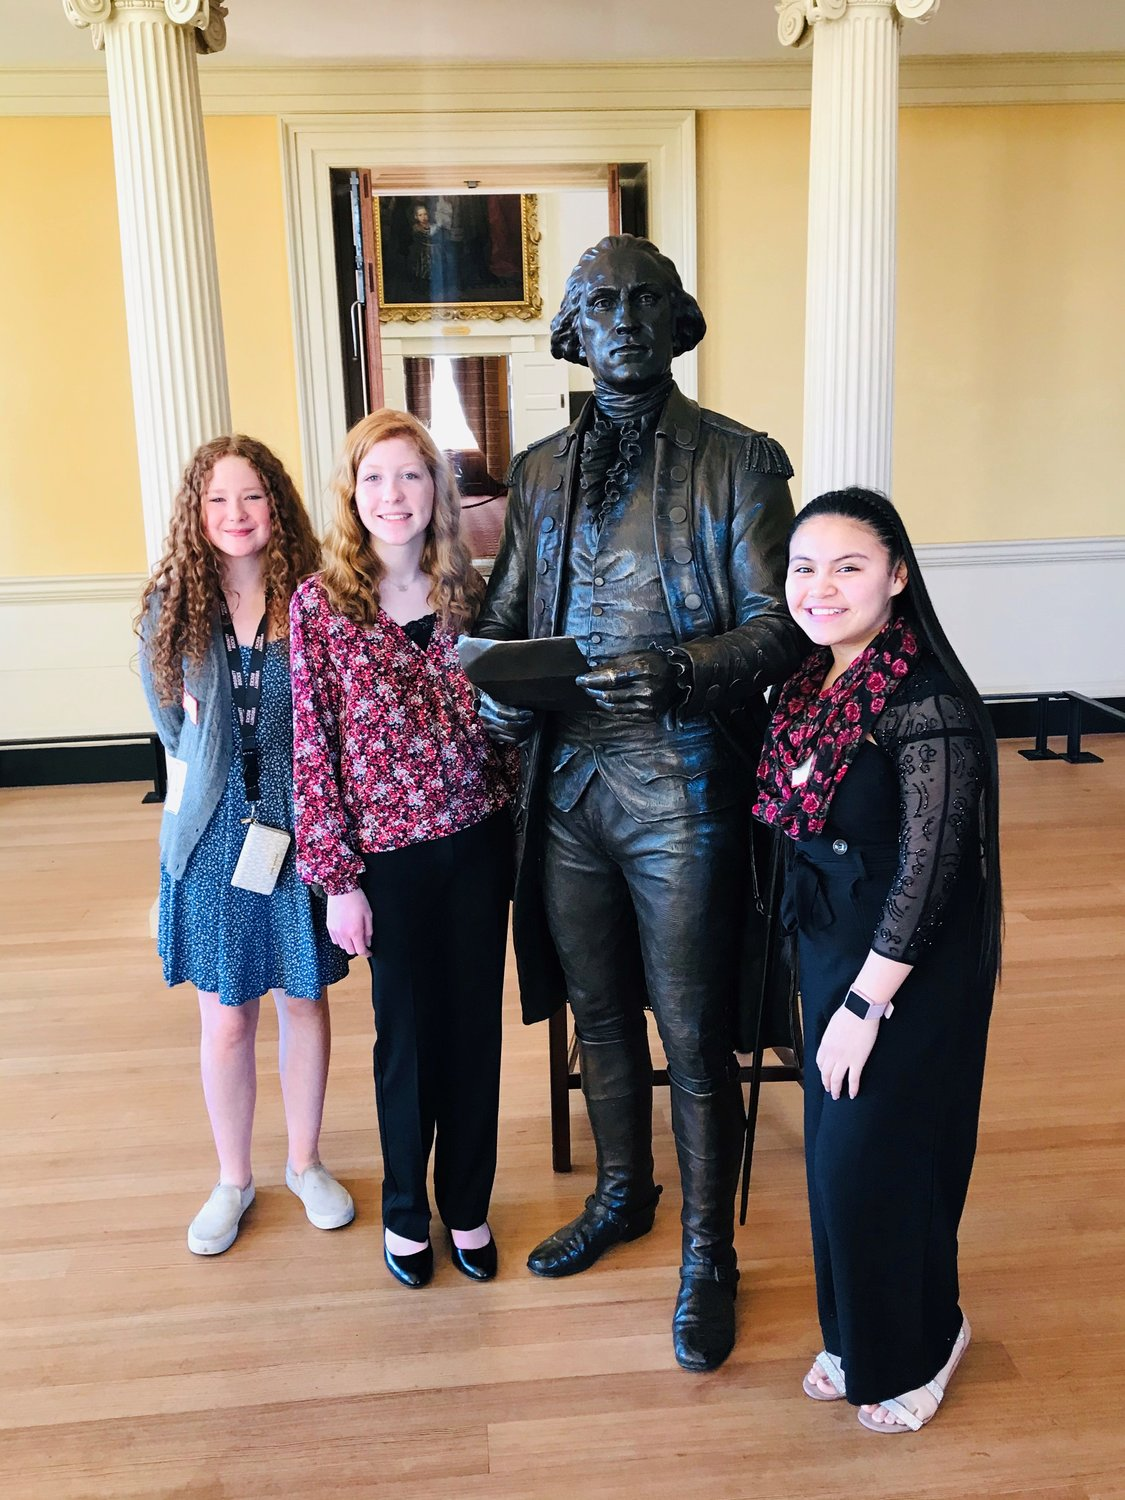 (L-R) Bridgette Myers, Katelyn Kilgore and Perla Ramirez-Lopez toured buildings in the state complex after winning the Senator for a Day essay contest.